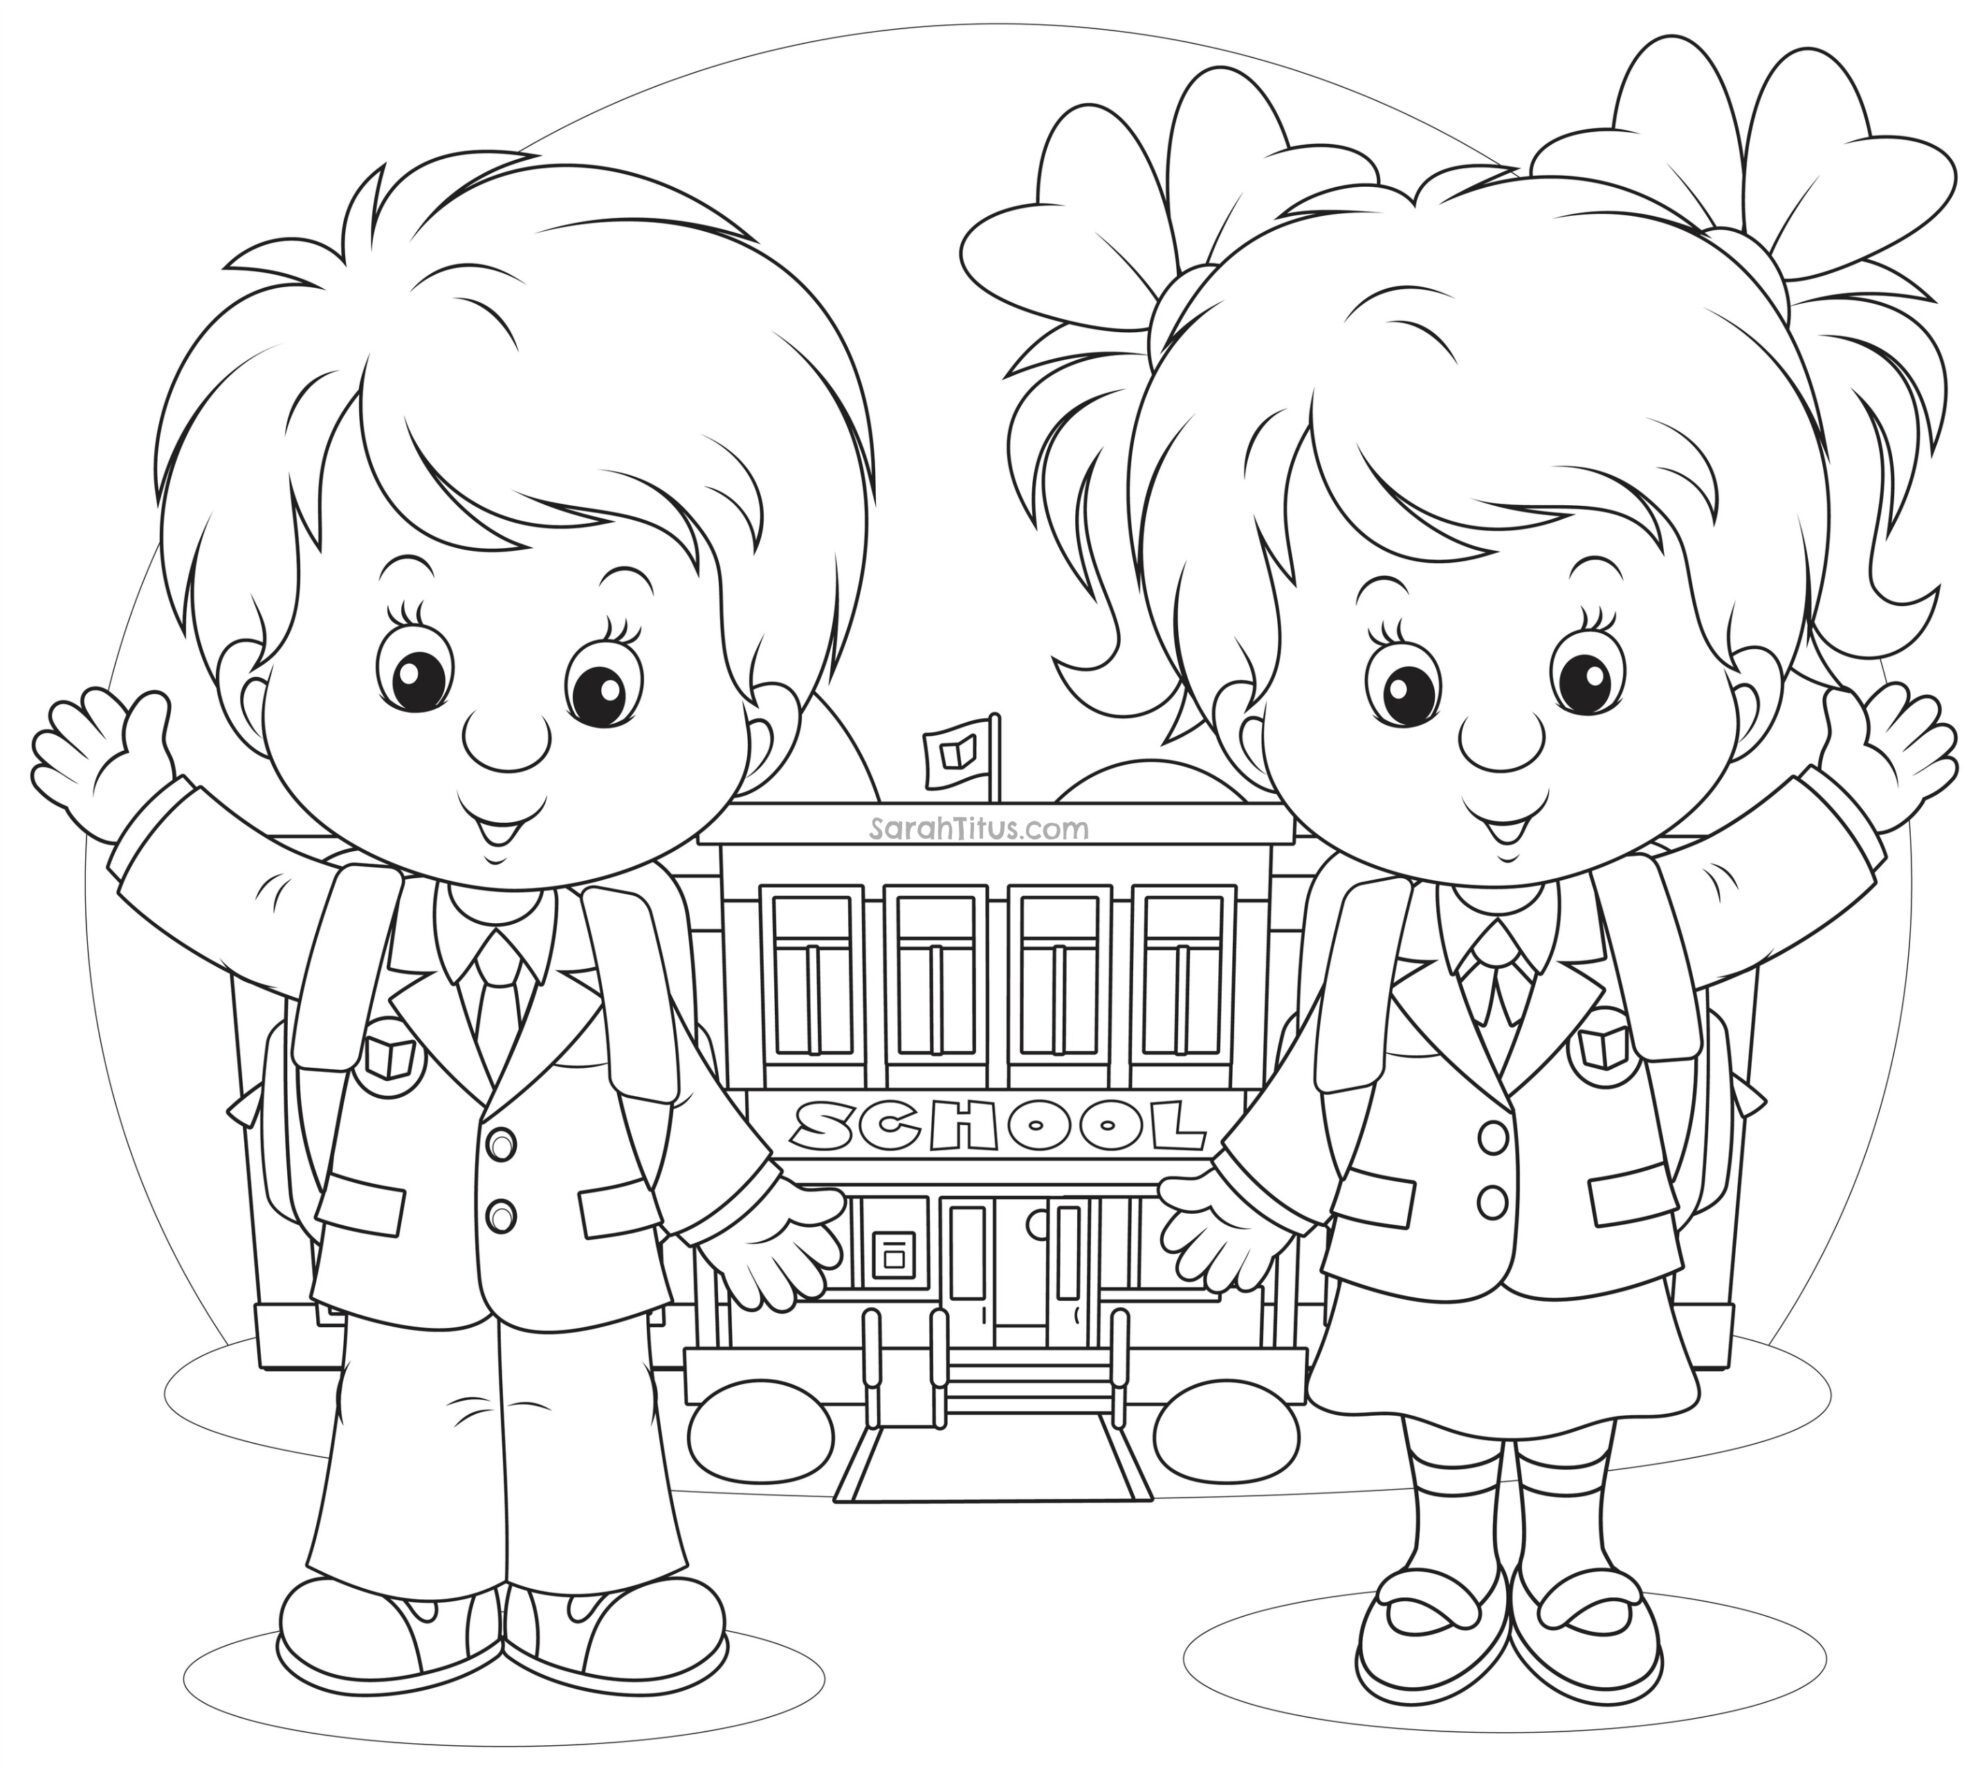 kindergarten coloring pages school - photo#34